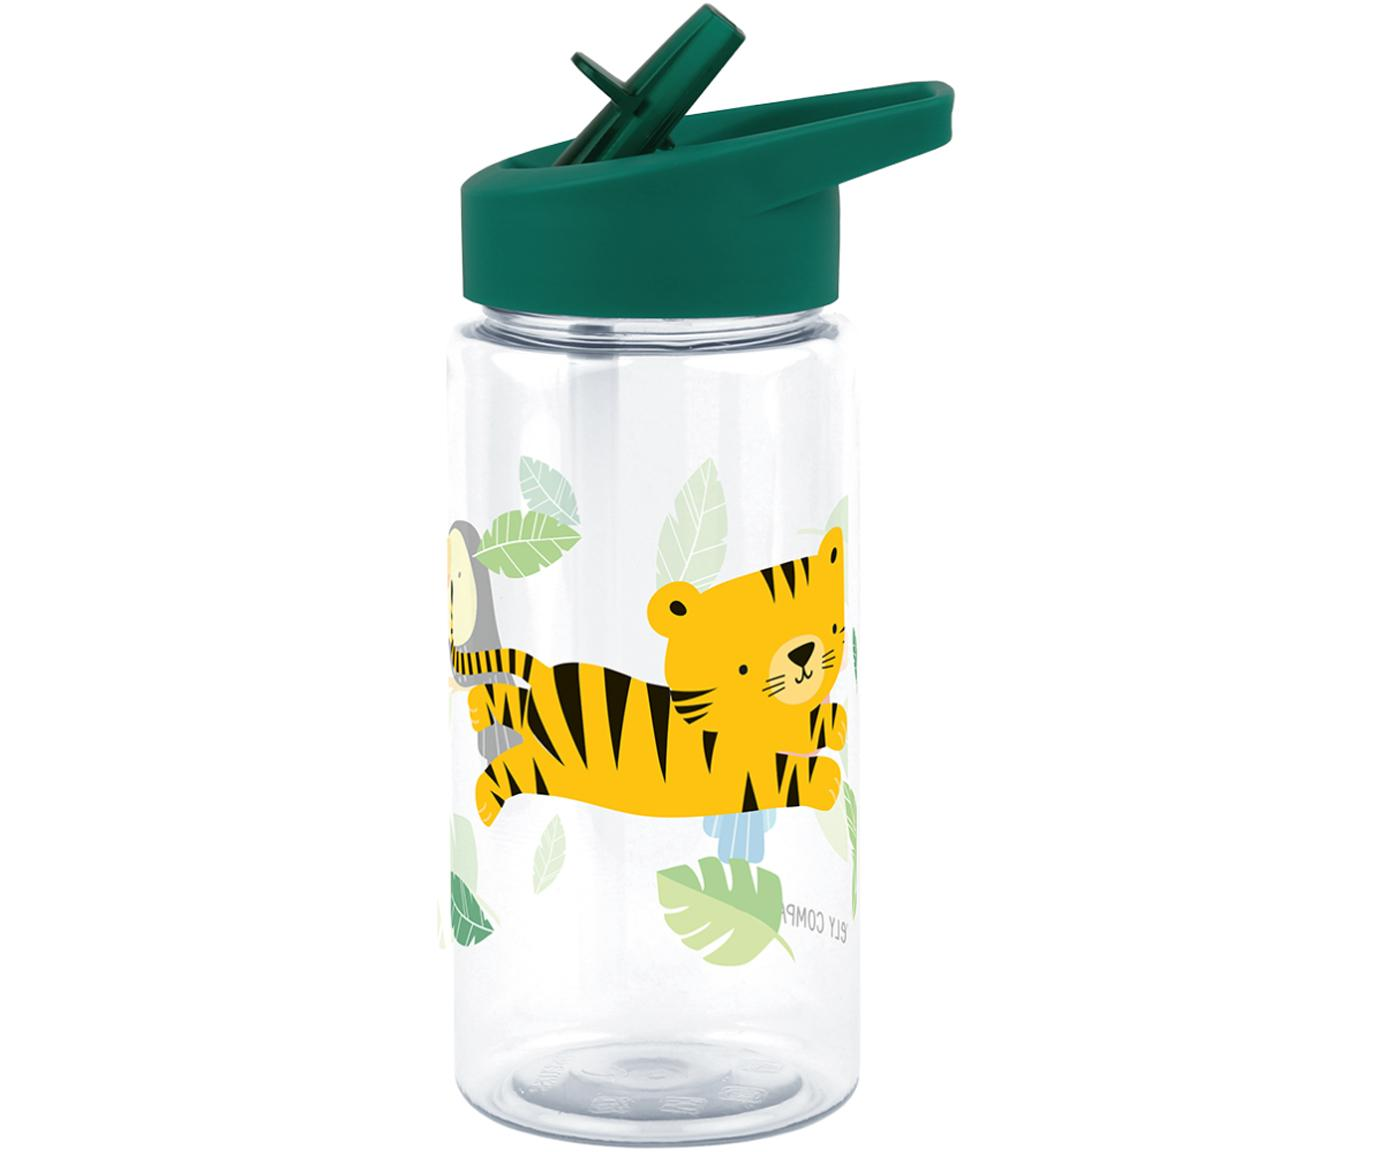 Borraccia Jungle Tiger, Materiale sintetico, Verde, 450 ml